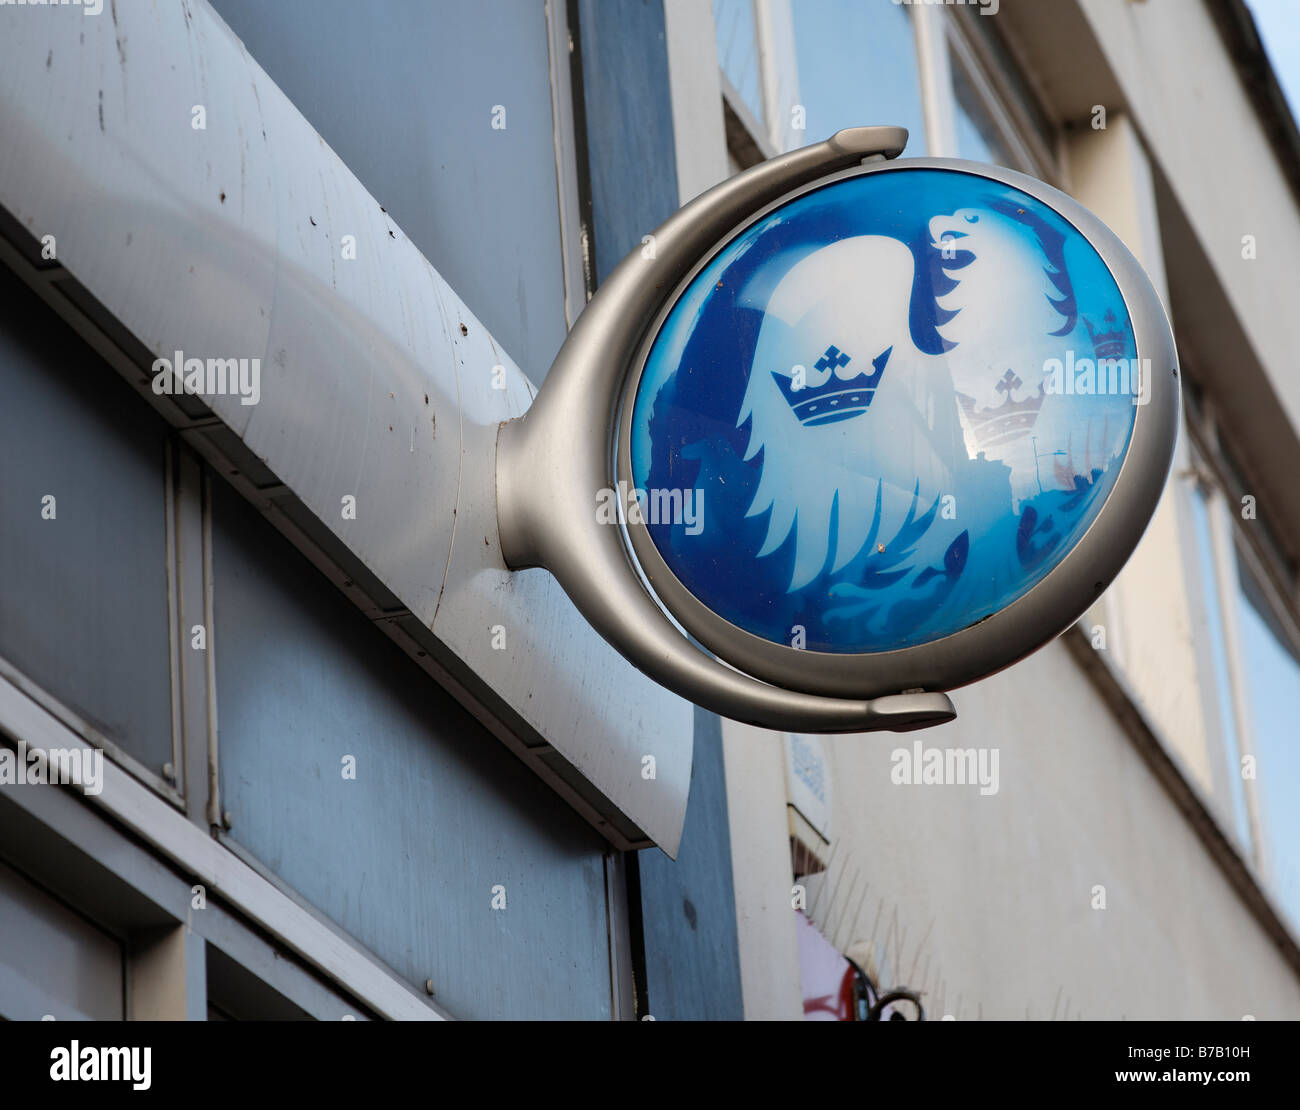 Barclays bank sign - Stock Image